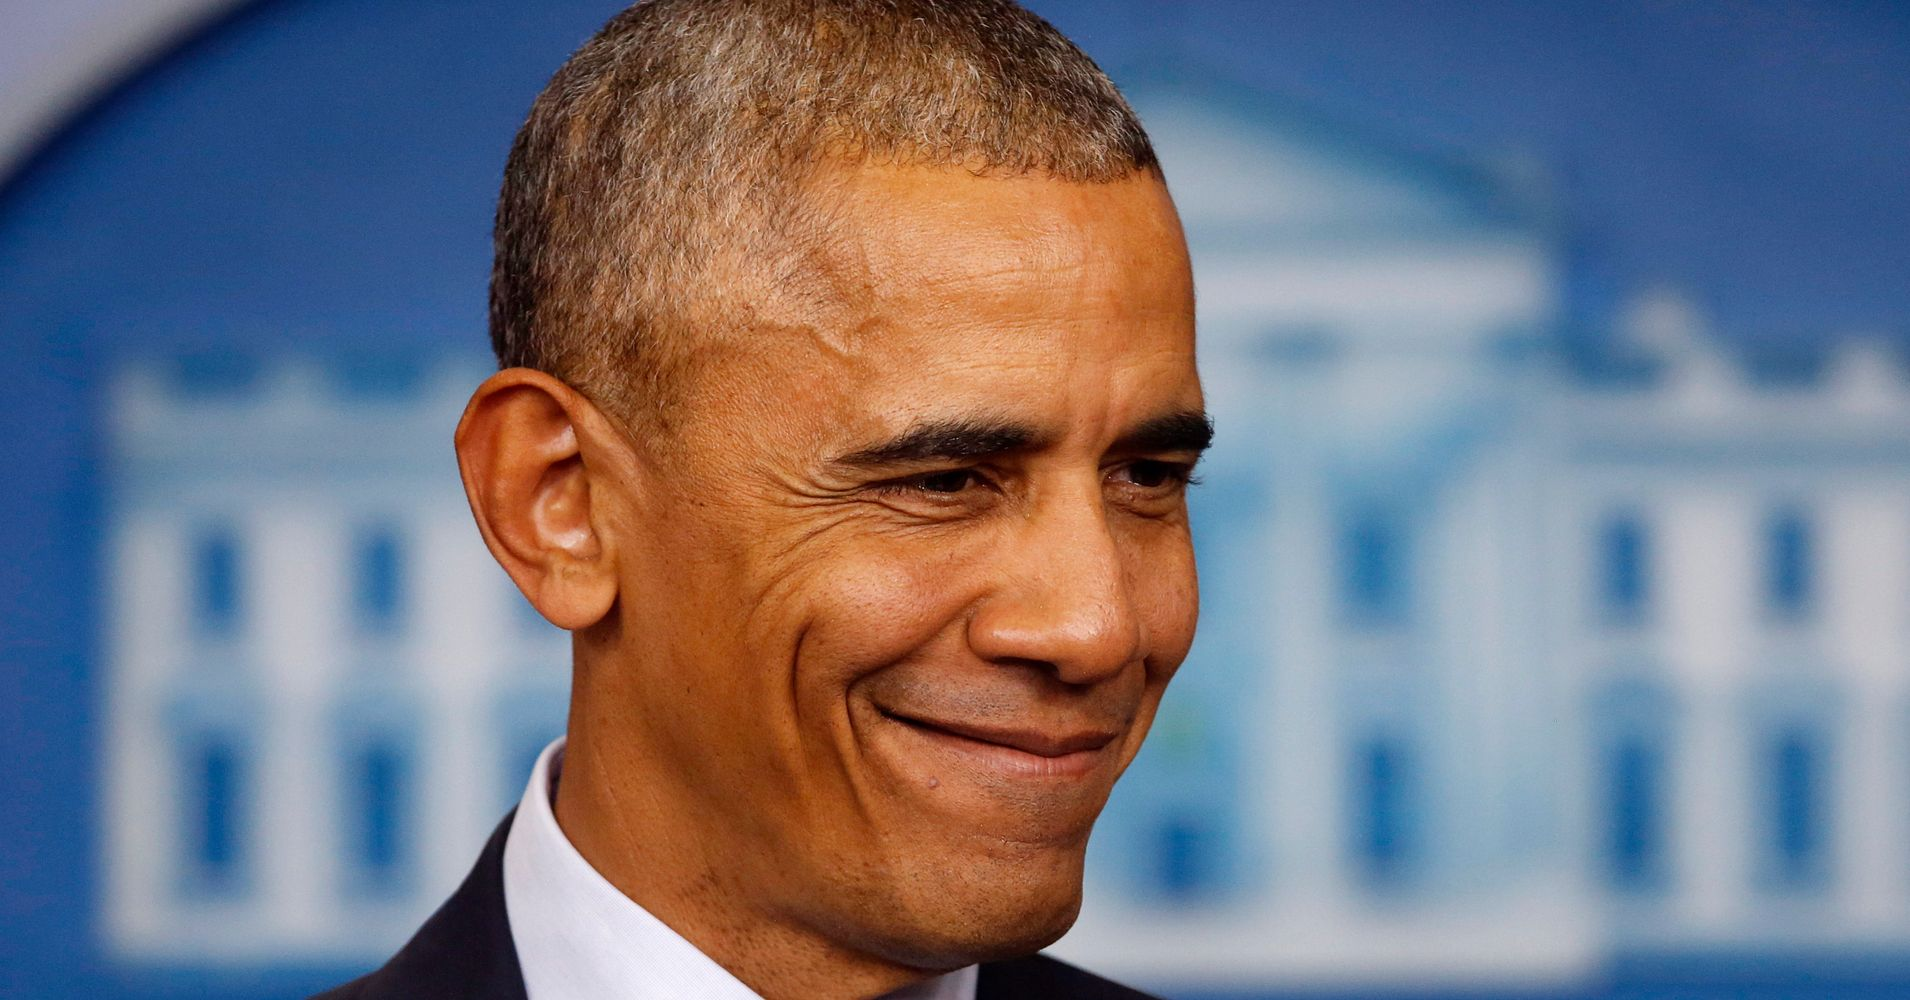 Barack Obama Gets Flooded With Beautiful Birthday Messages On